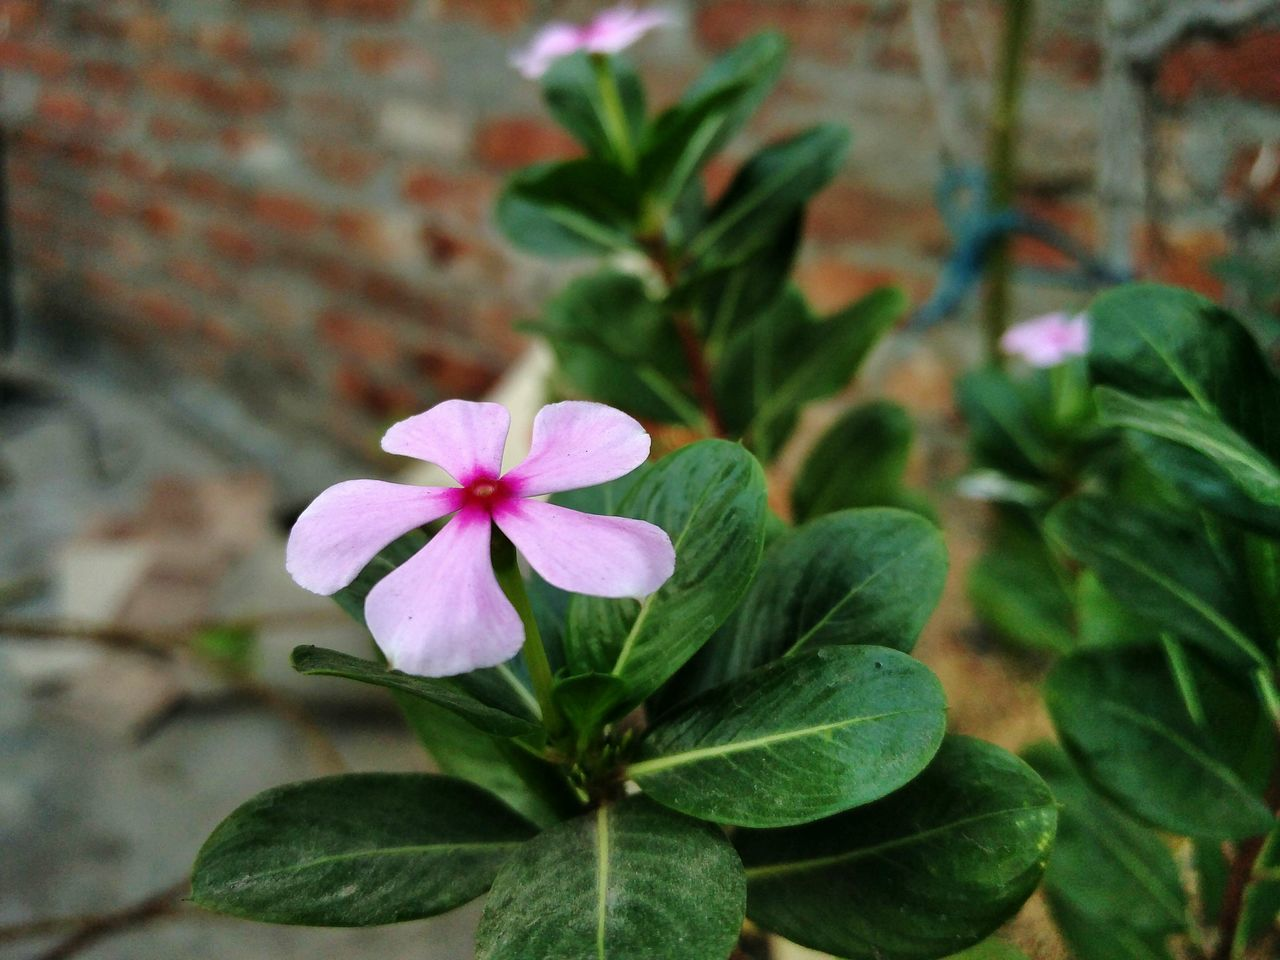 Flower Close-up Freshness Pink Color Flower Head No People Beauty In Nature Indianphotograhers Oneplus2 Periwinkle